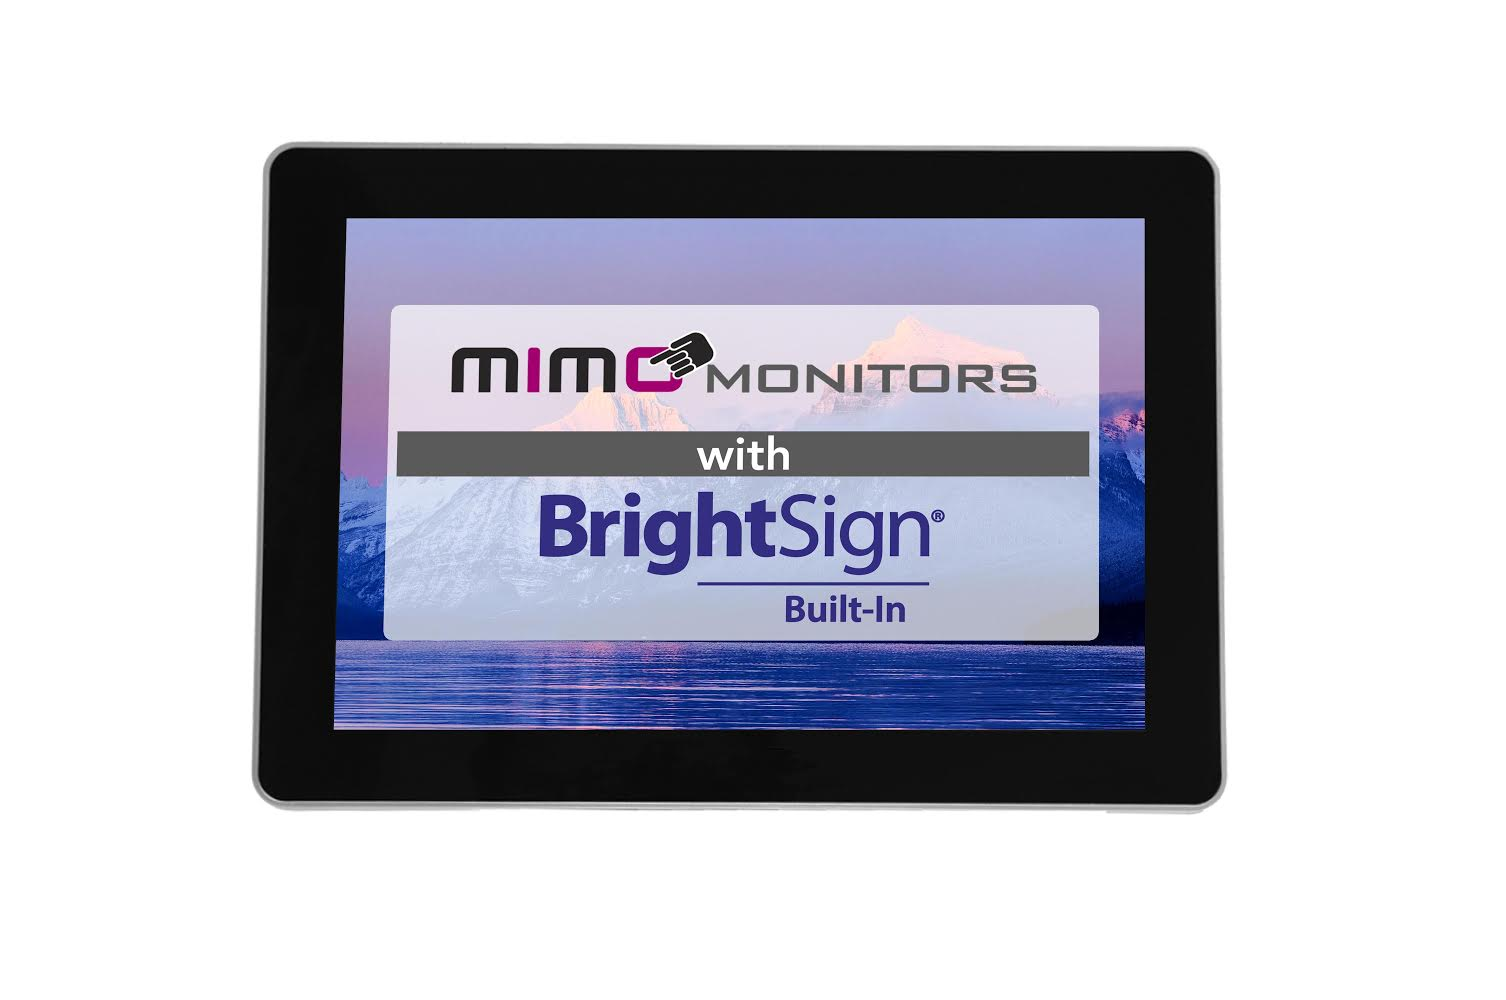 The Mimo Vue with BrightSign Built-In Open Frame display is now available for purchase